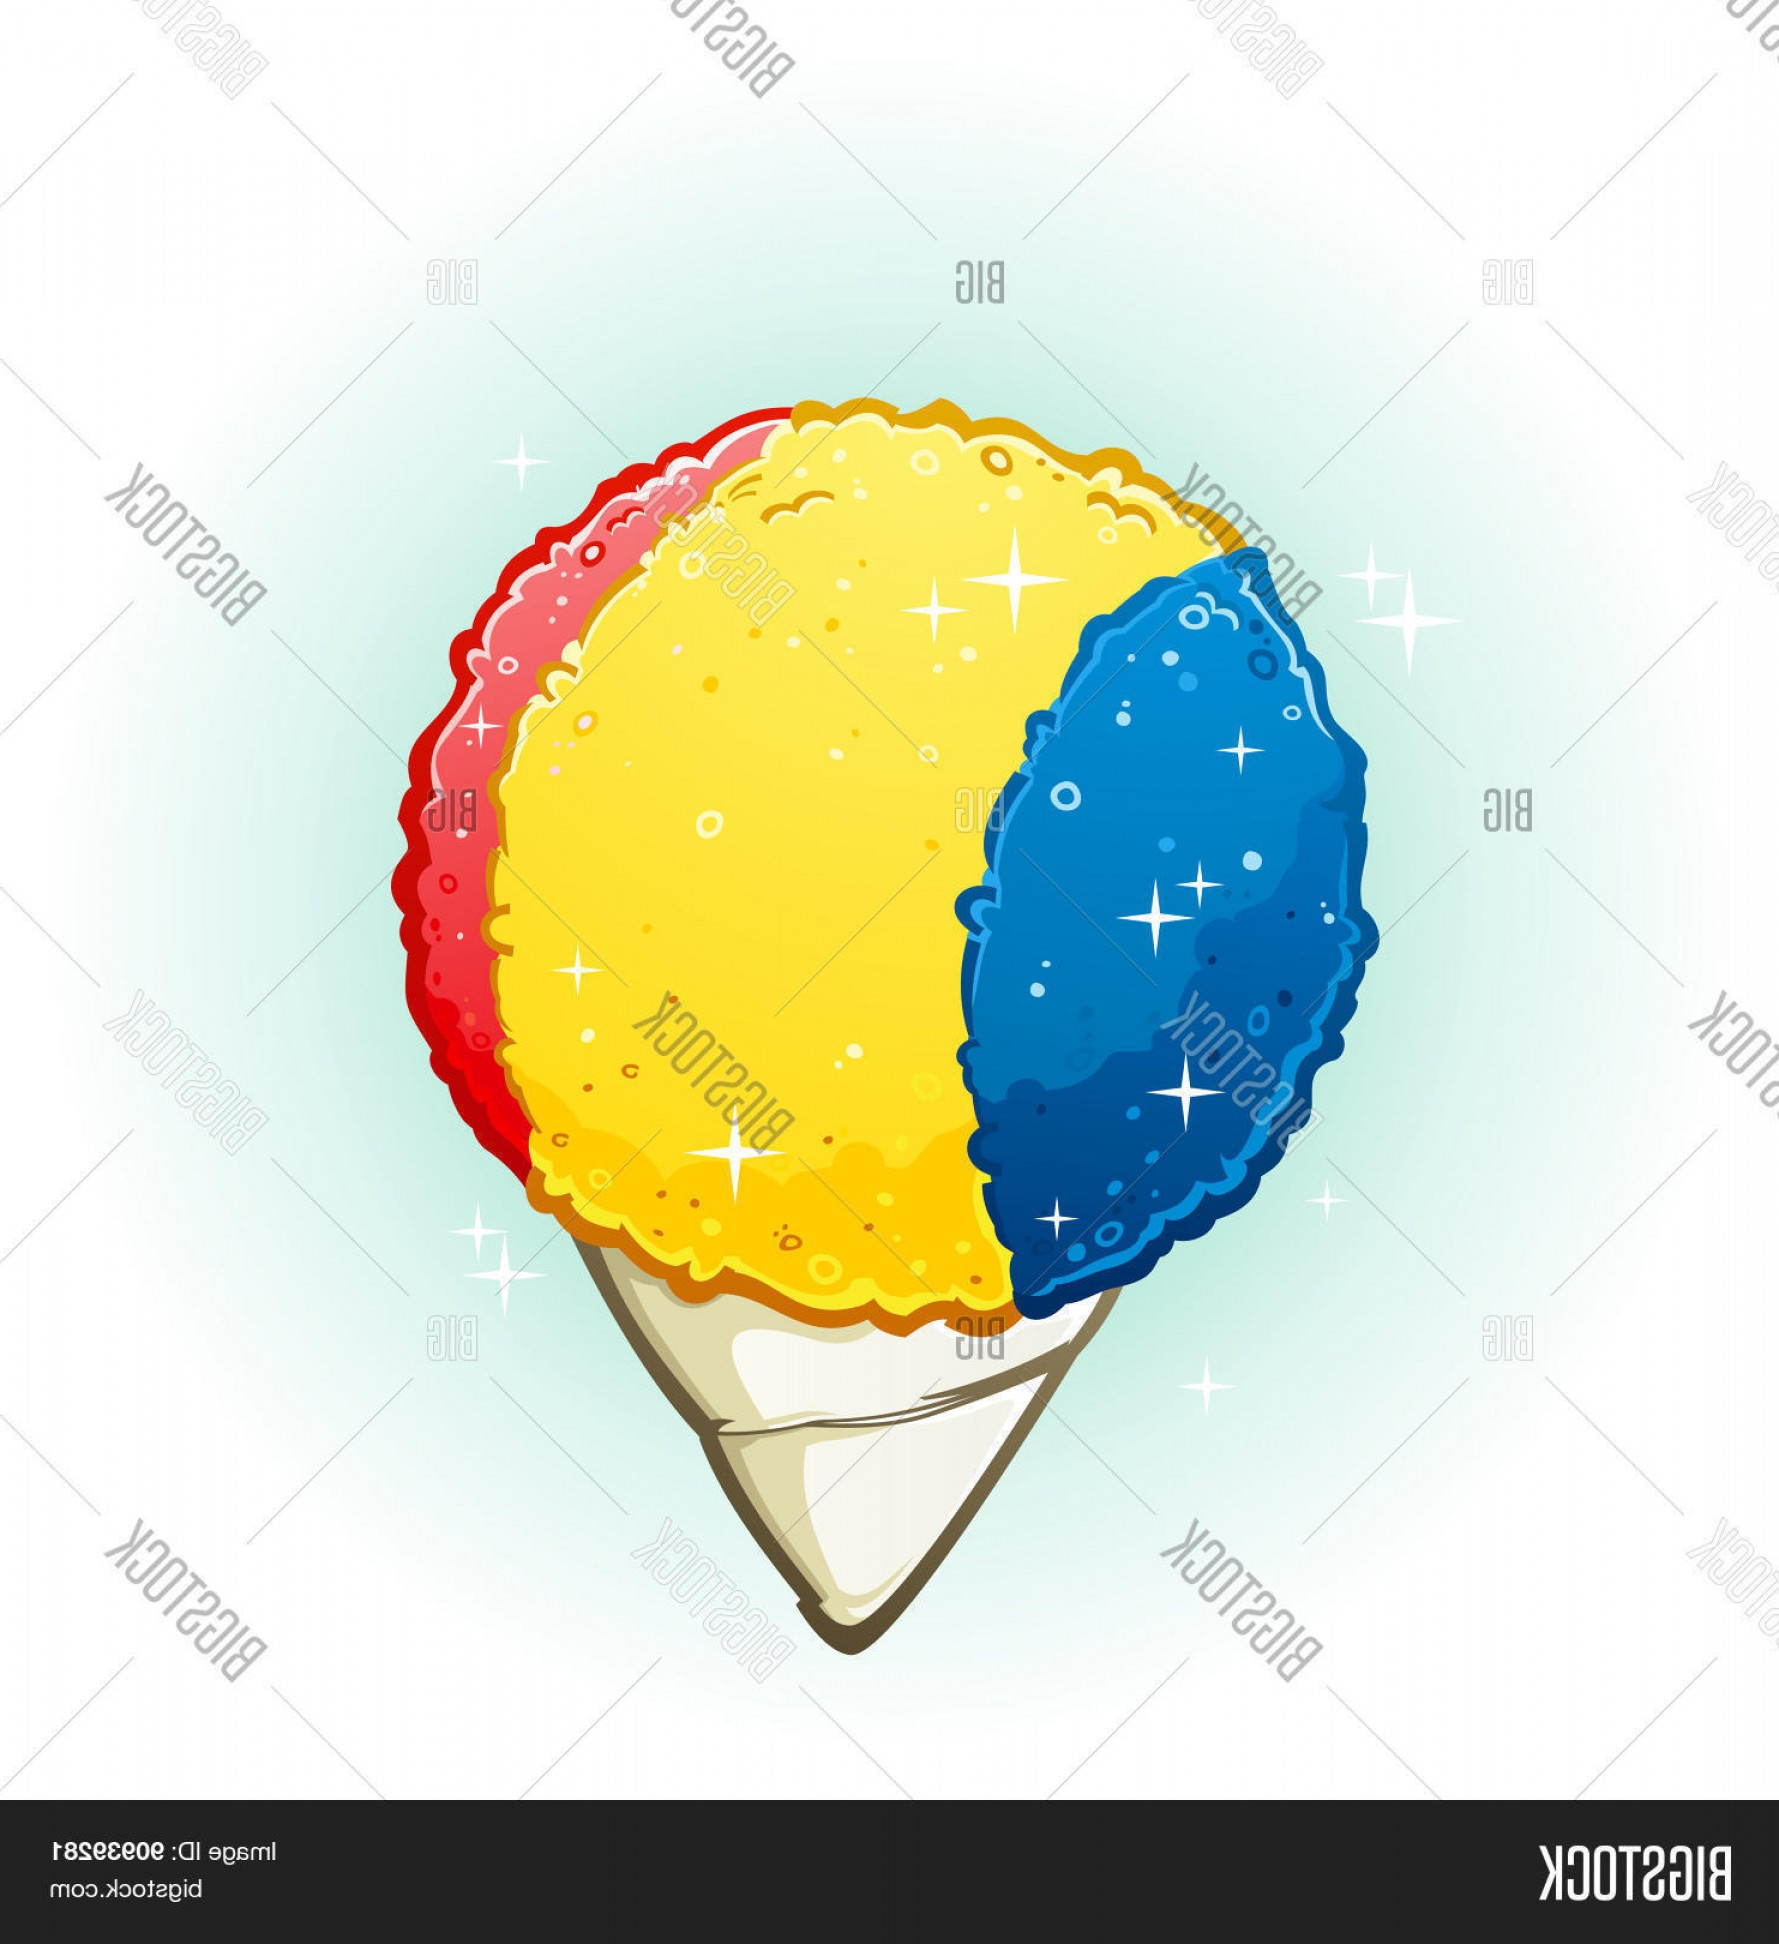 Snow Cone Vector Free: Stock Vector Snow Cone Cartoon Illustration